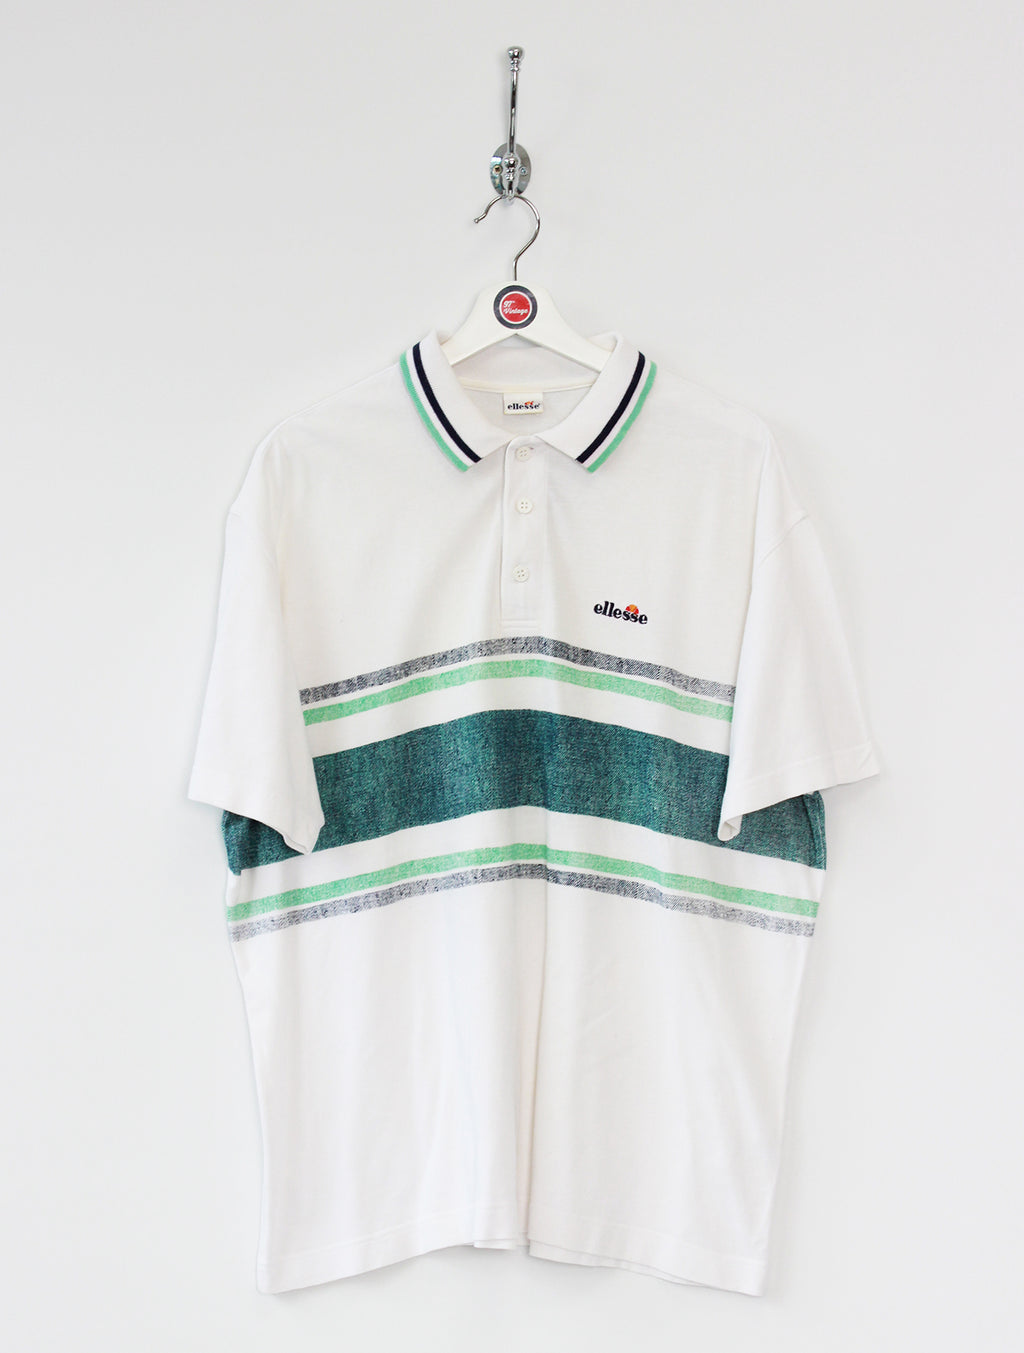 Ellesse Polo Shirt (XL)